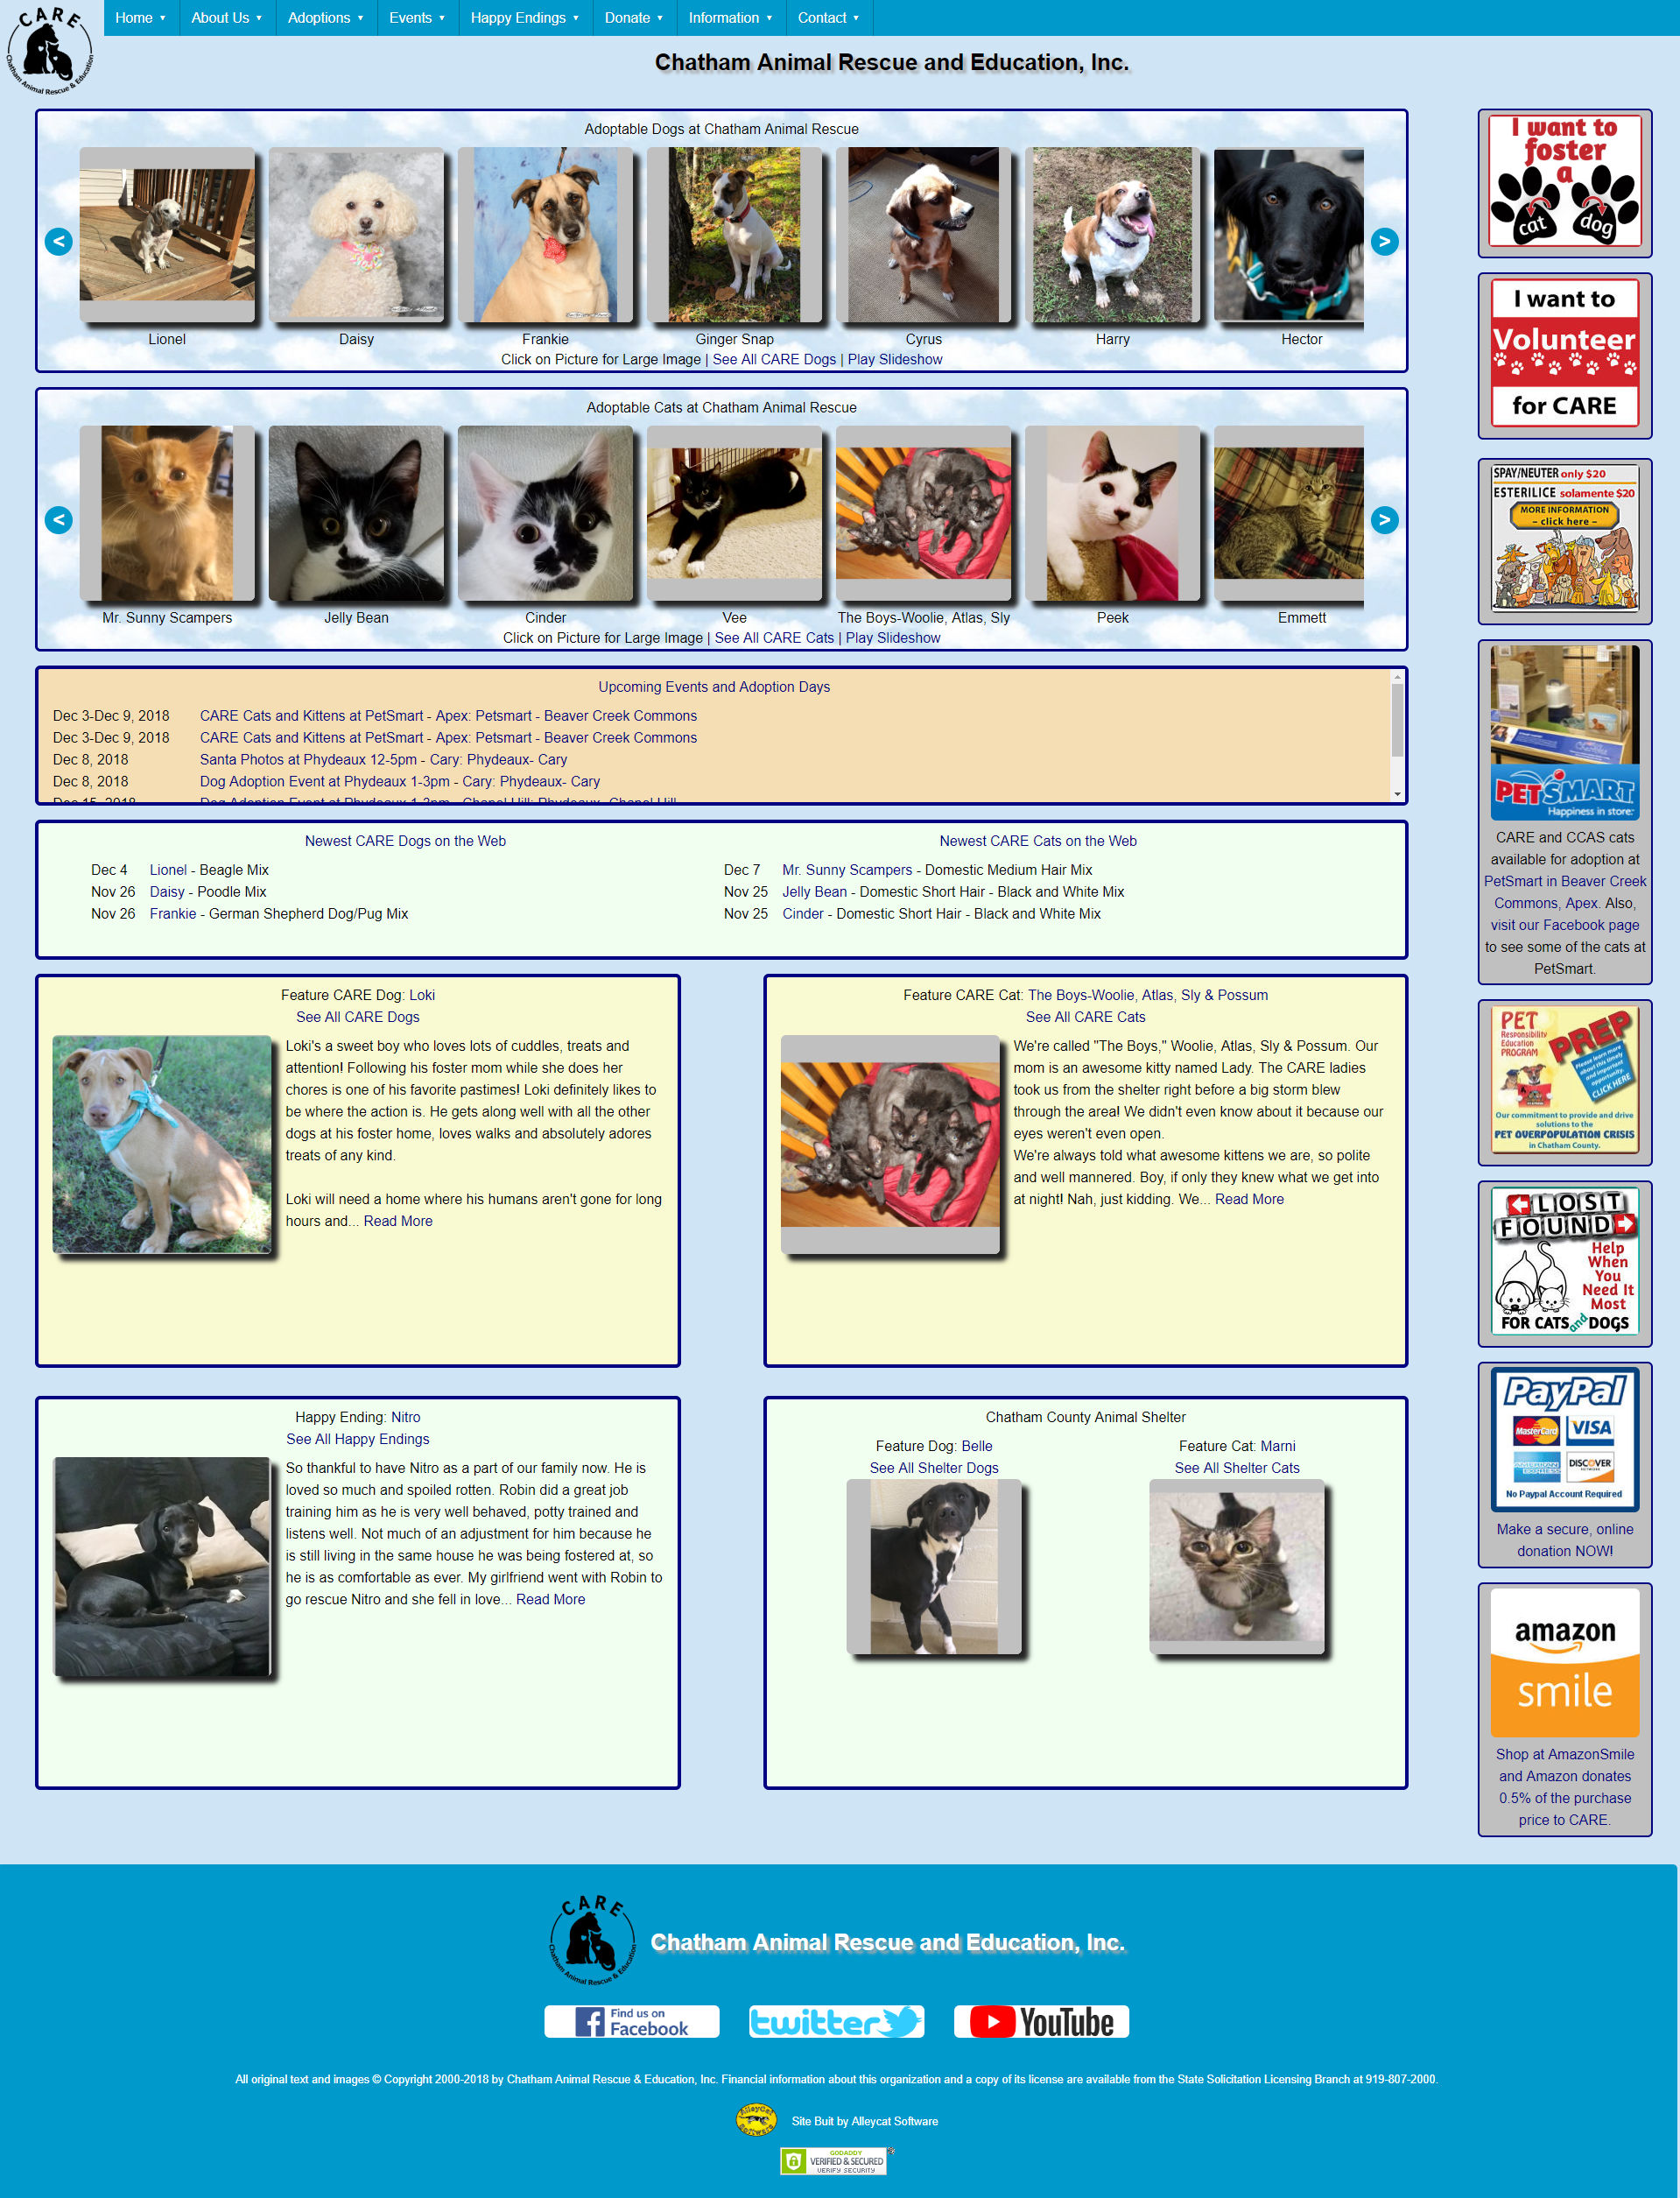 Chatham Animal Rescue and Education Web Site